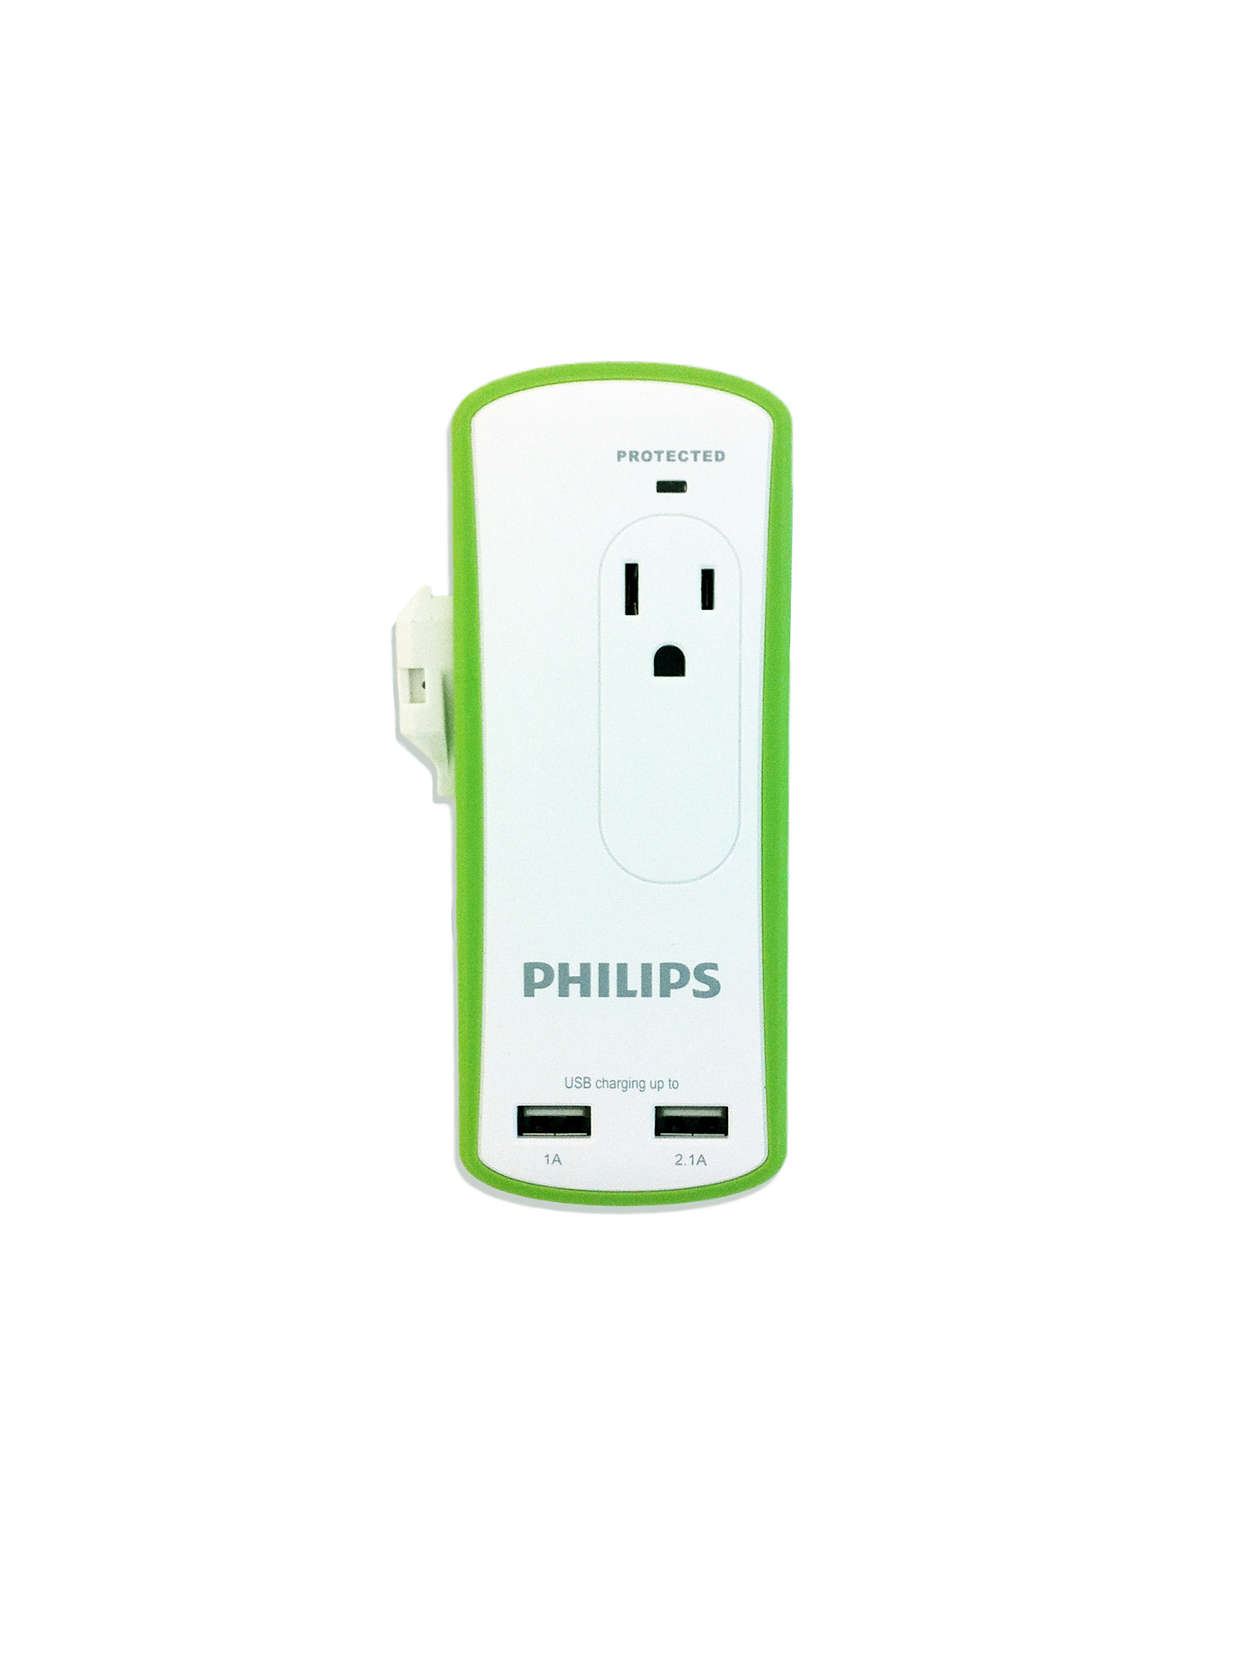 Power multiplier spp6020a 37 philips - Electrical outlet multiplier ...